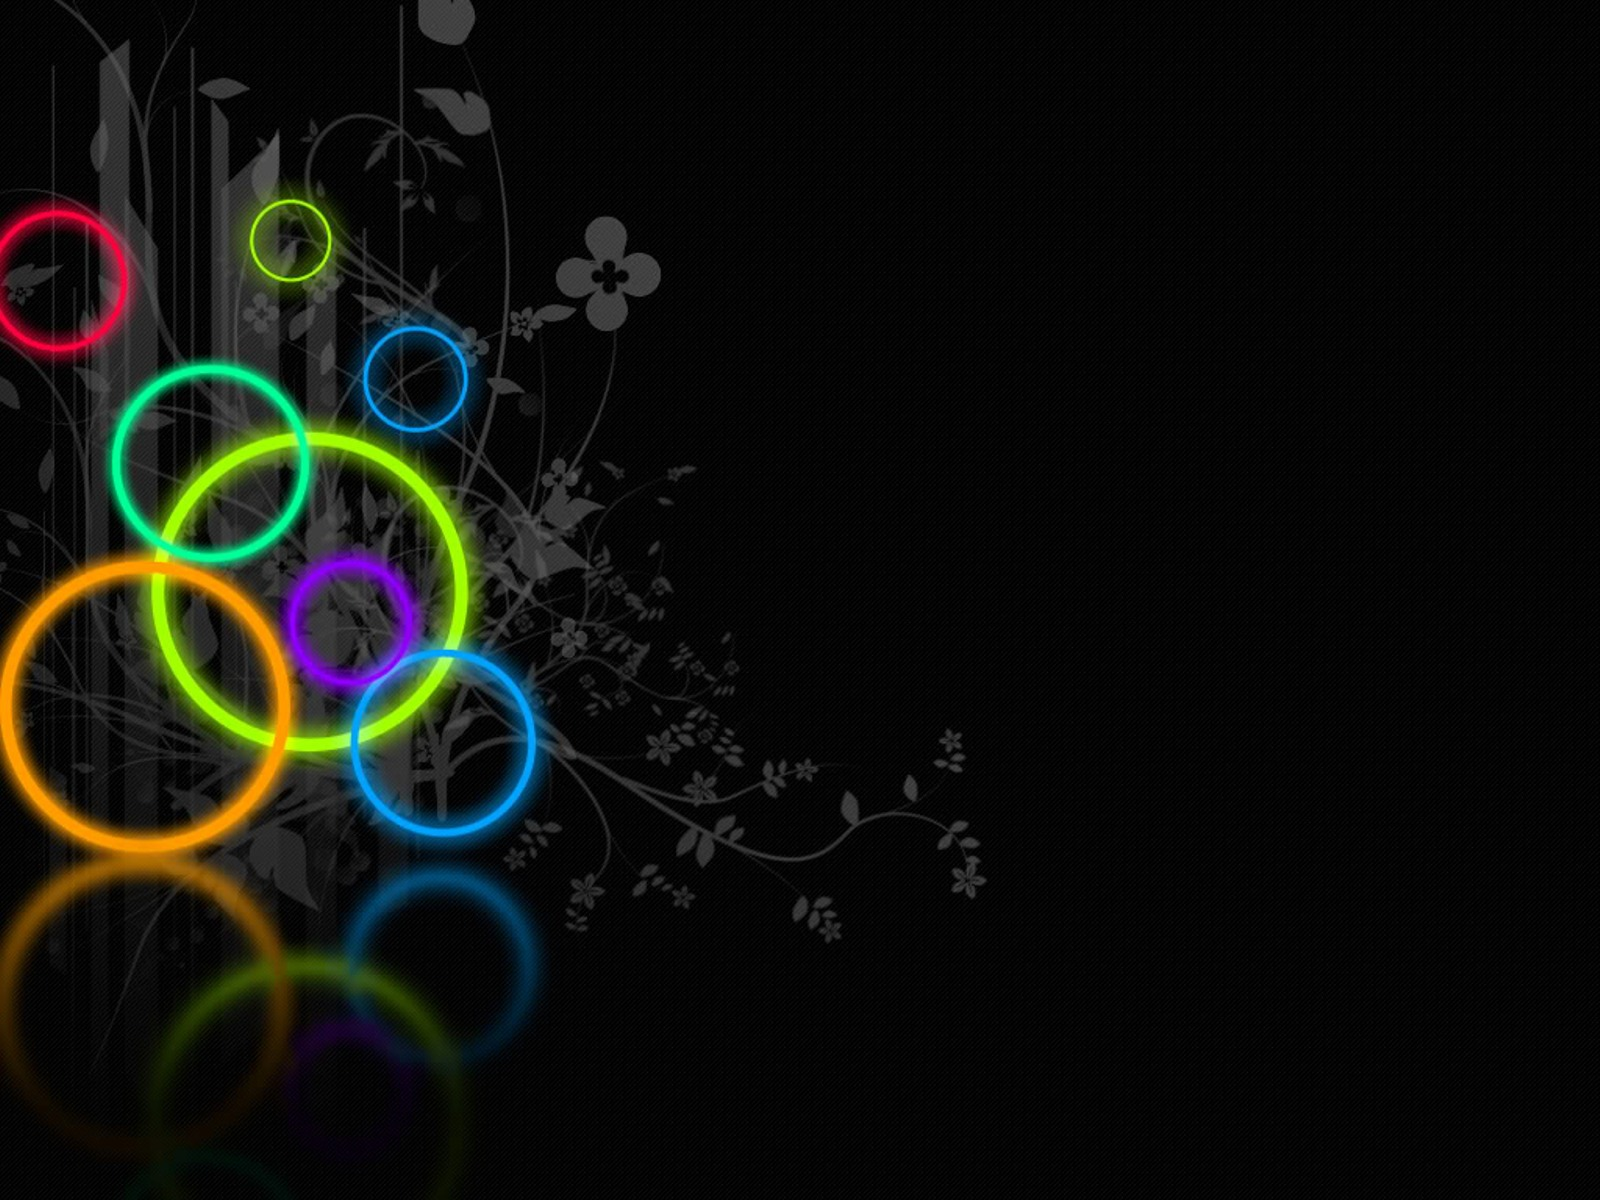 Cute Neon Backgrounds 1600x1200